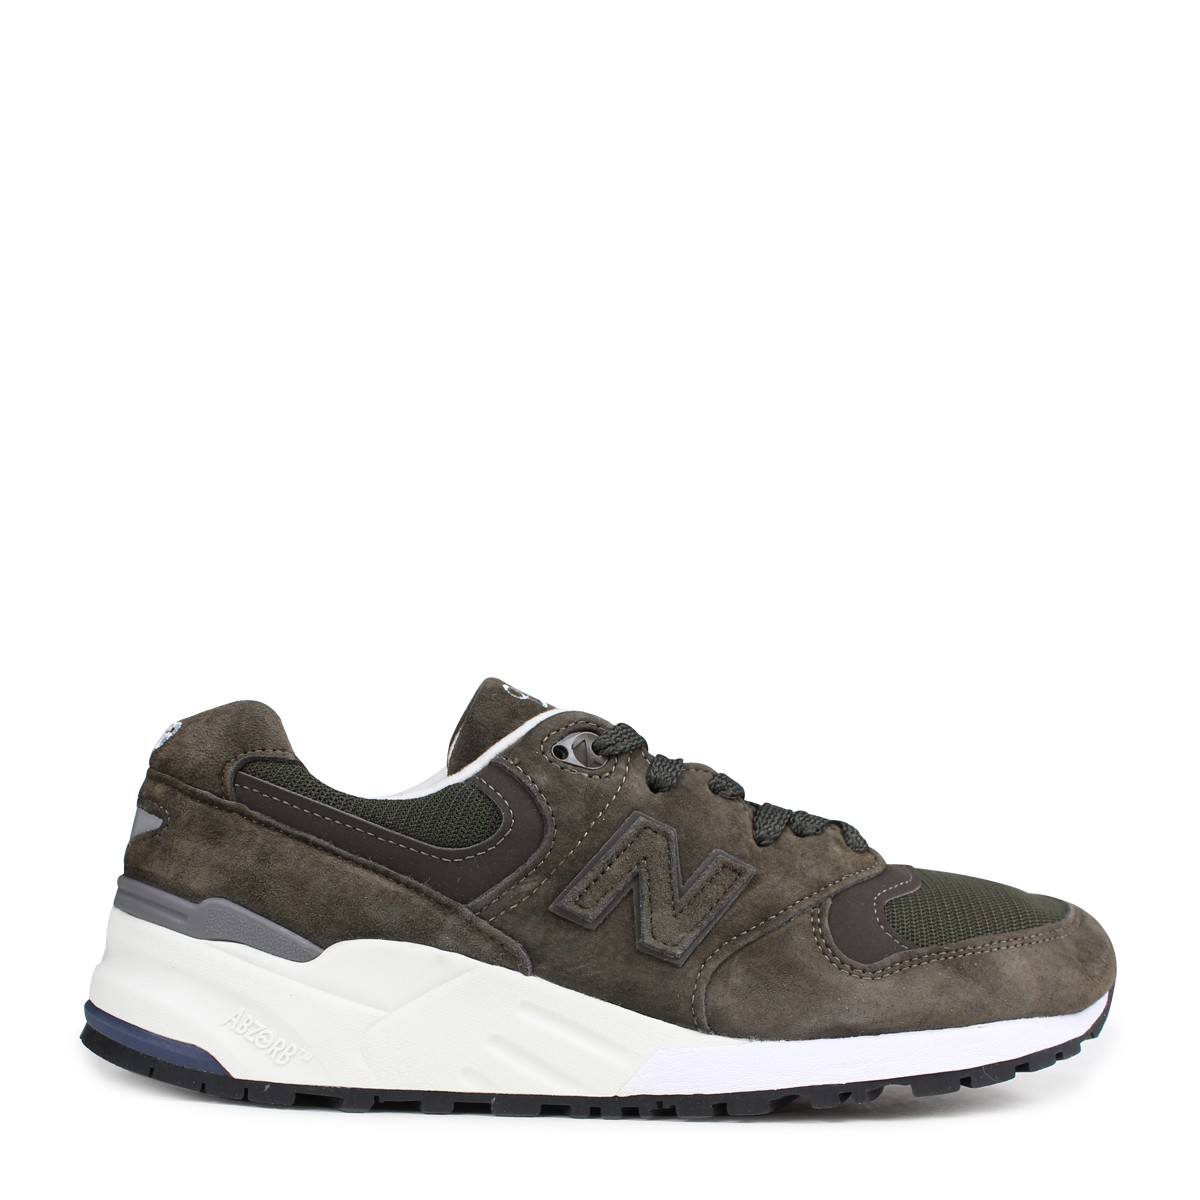 New Balance 999 Made in USA Homme Chaussures Vert M999NJ